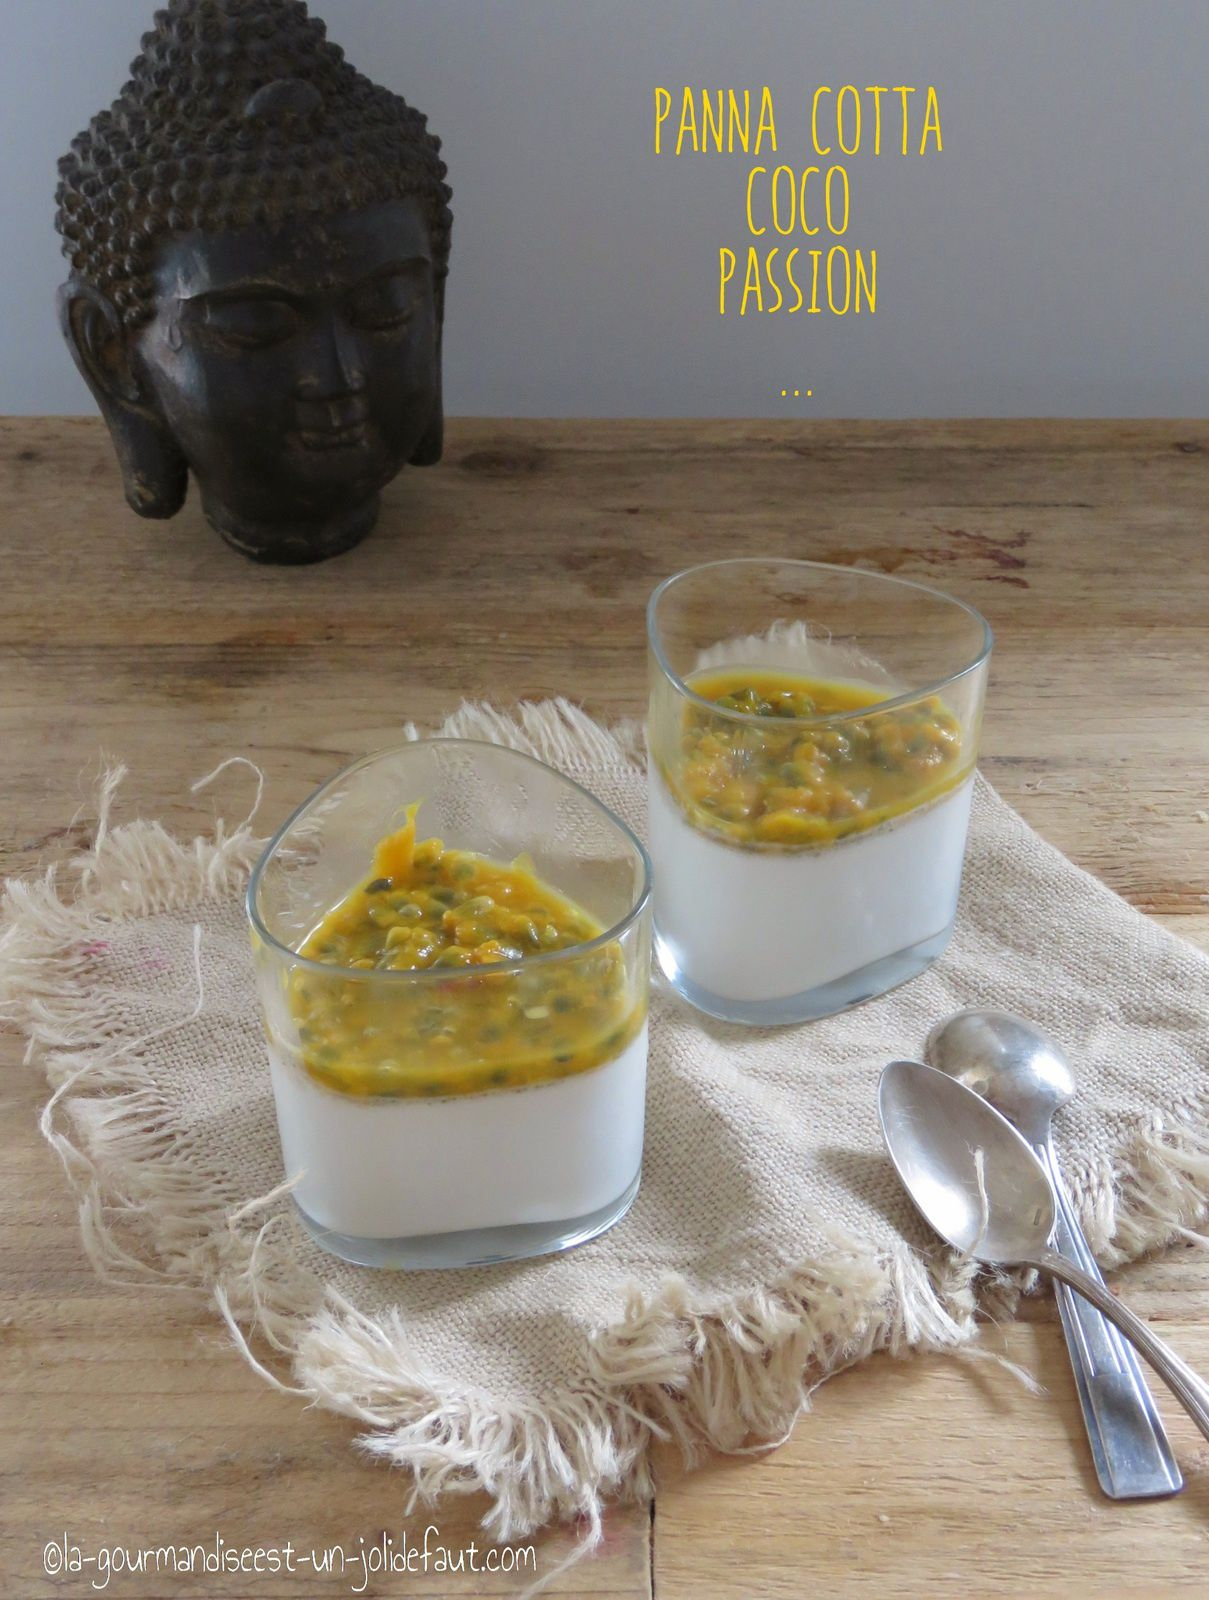 Panna cotta au lait de coco et fruits de la passion